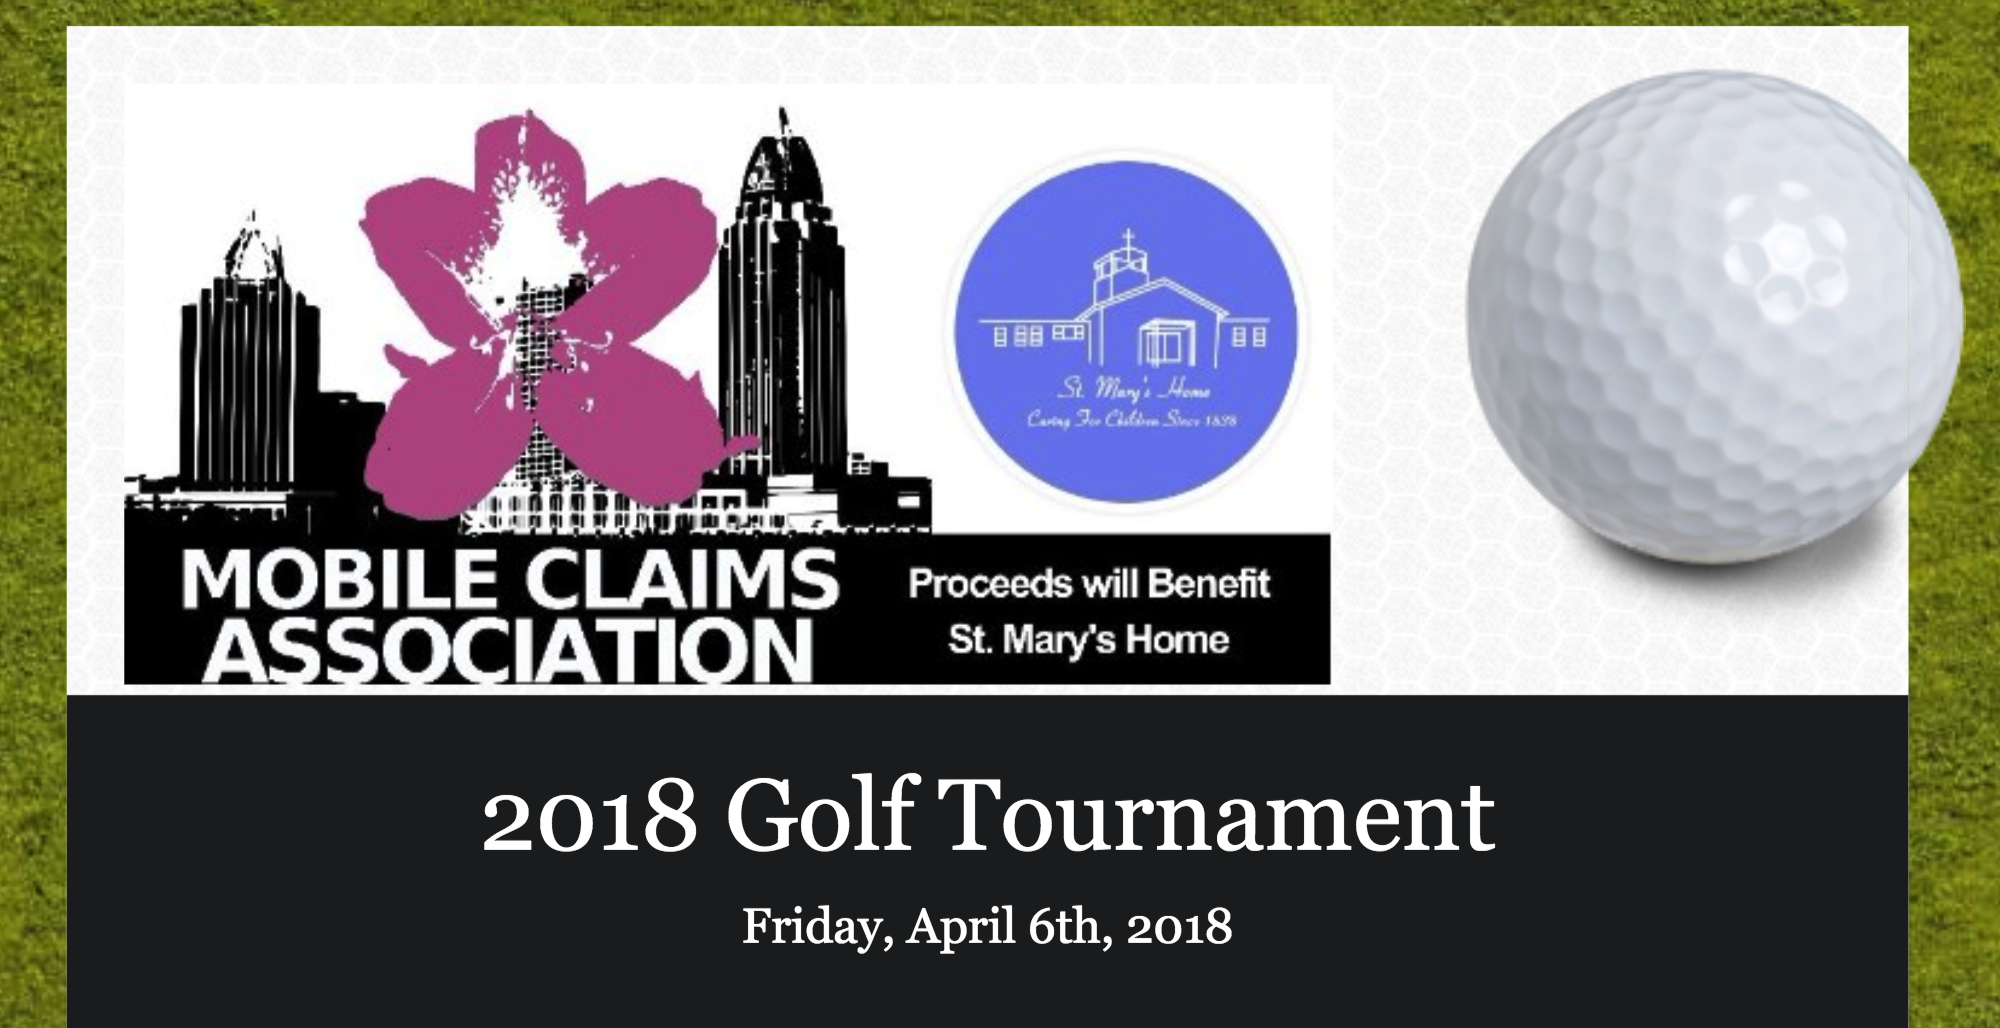 mca-golf-2018-banner.png